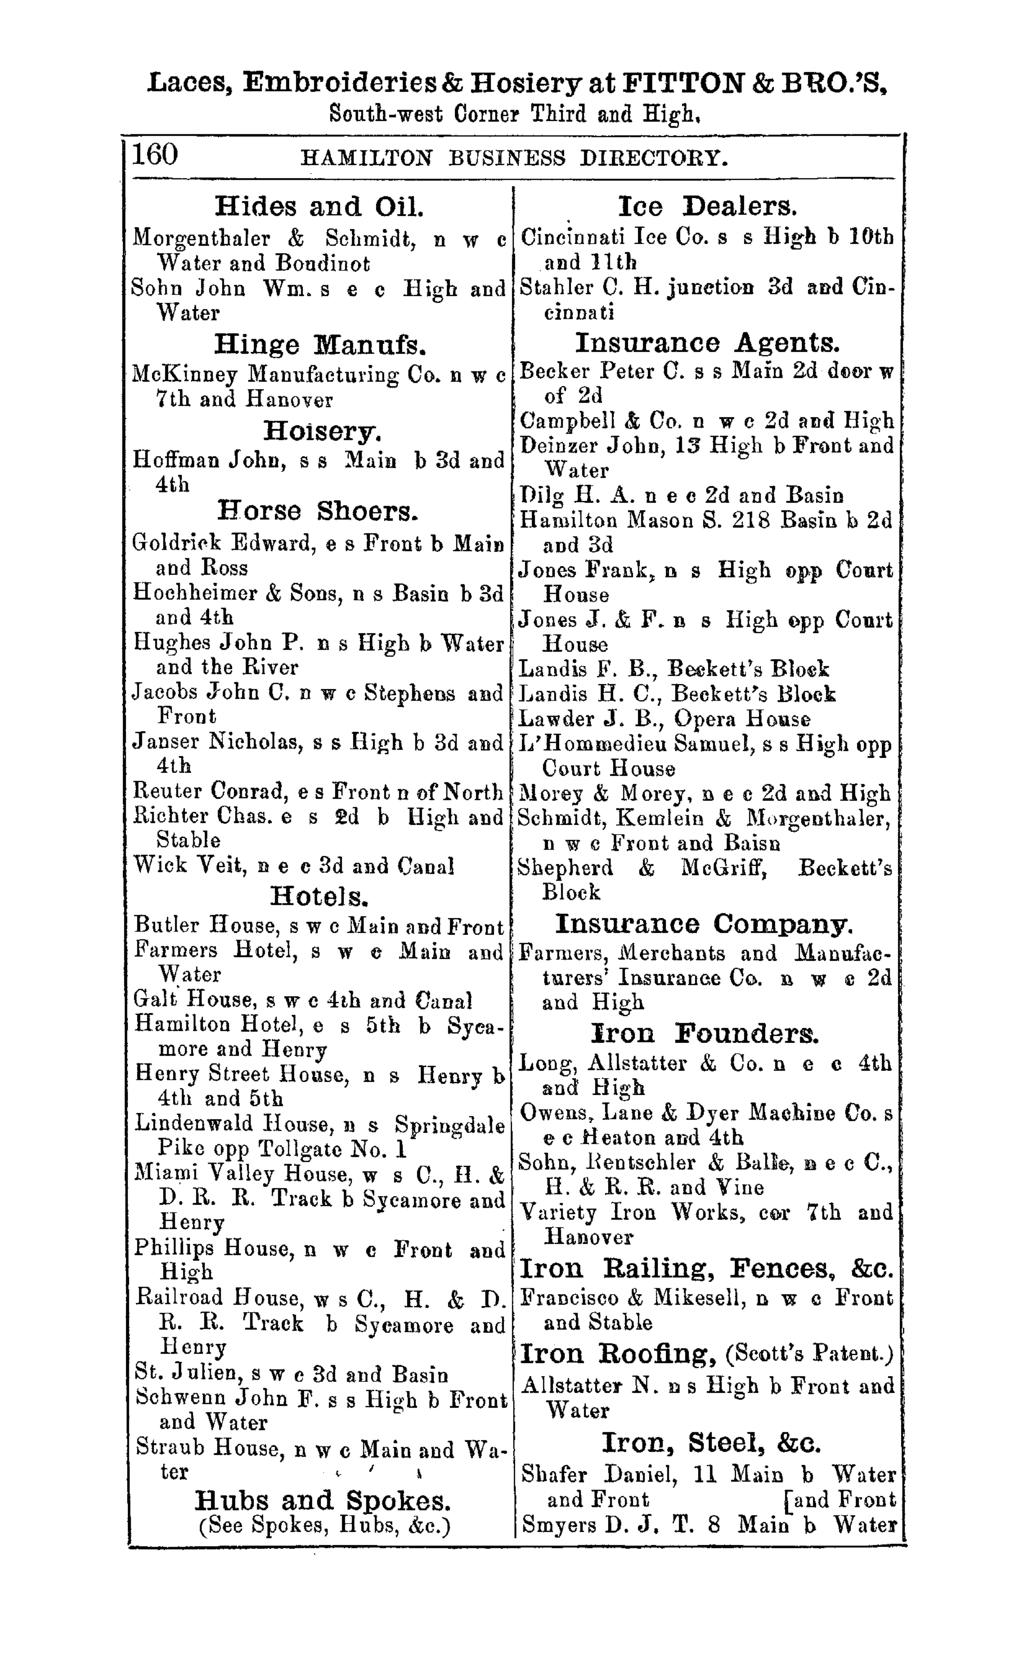 Laces, Embroideries & Hosiery at FITTON & BUO.'S, South-west Oorner Third and High. 160 HAMILTON BUSINESS DIRECTORY. Hides and Oil. Morgenthaler & Schmidt, n w c Water and Boudinot Sohn John Wm.